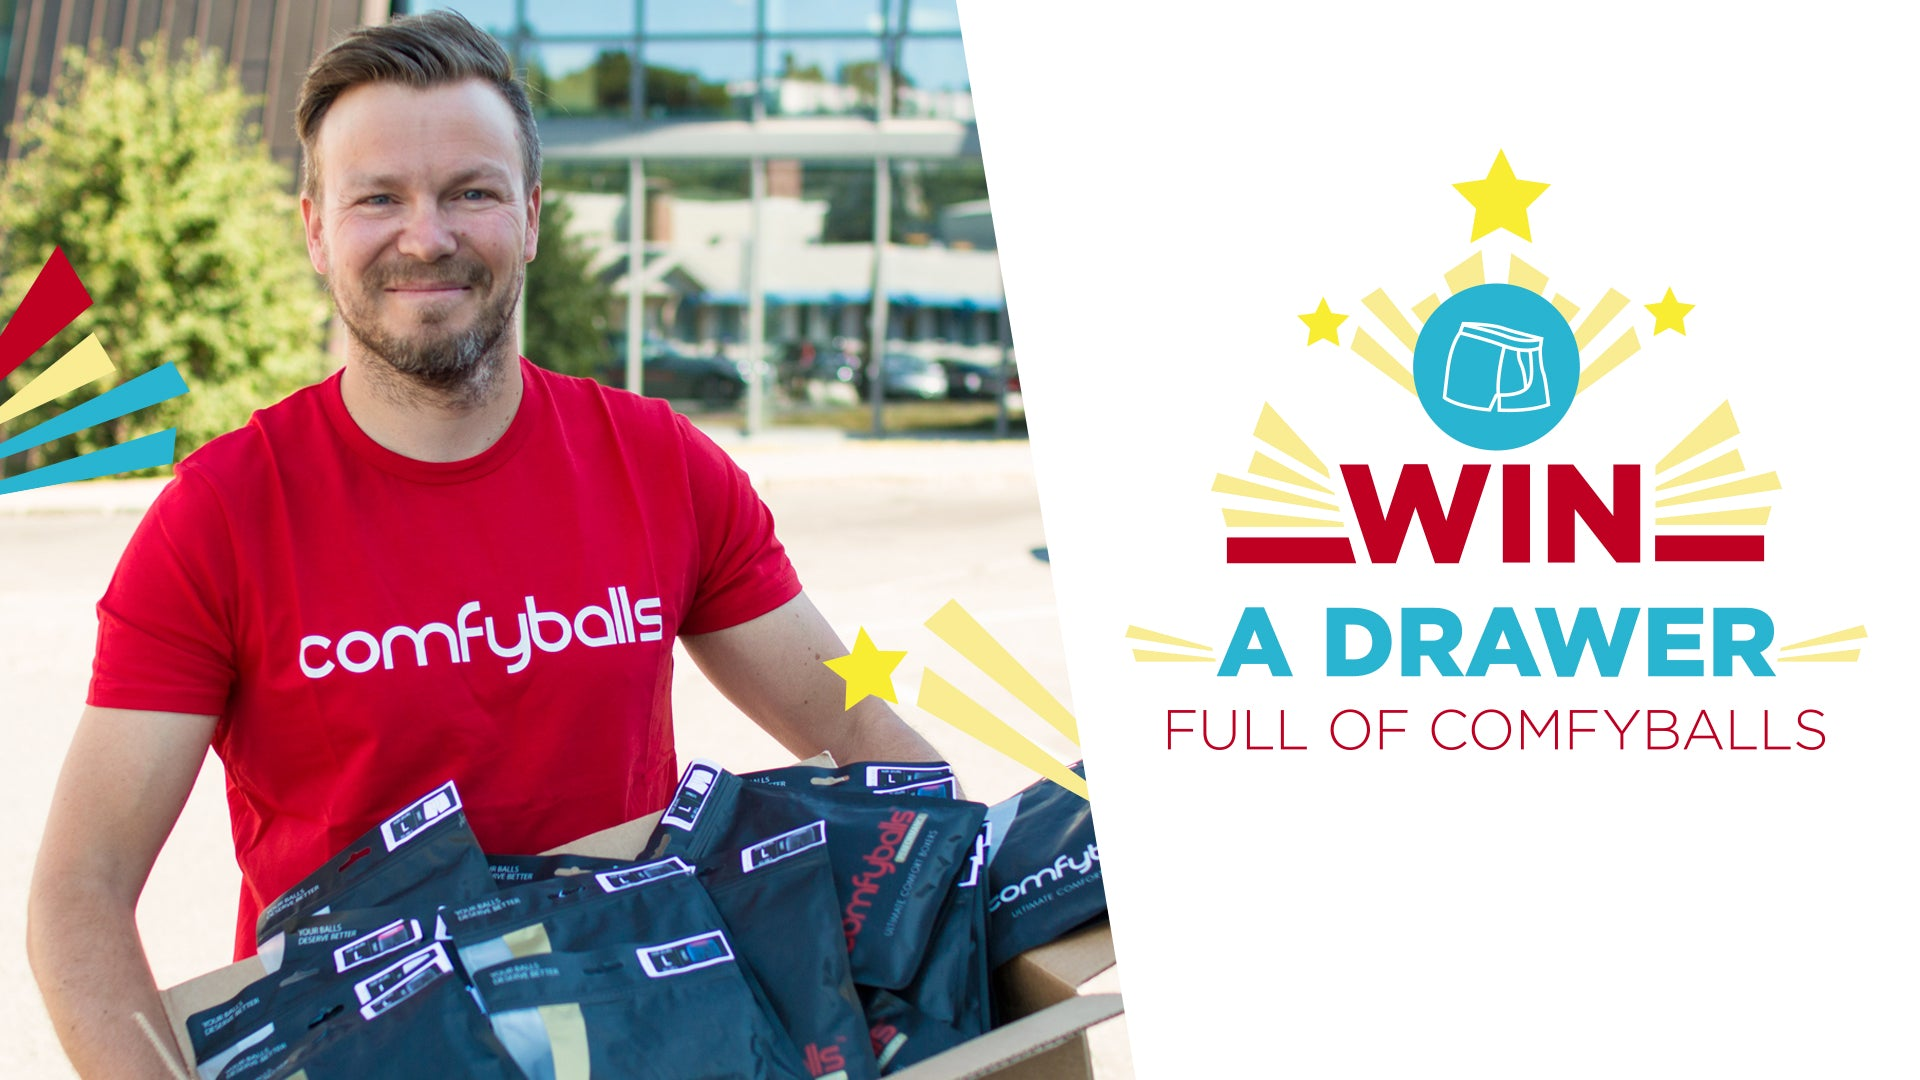 Win a drawer full of Comfyballs!